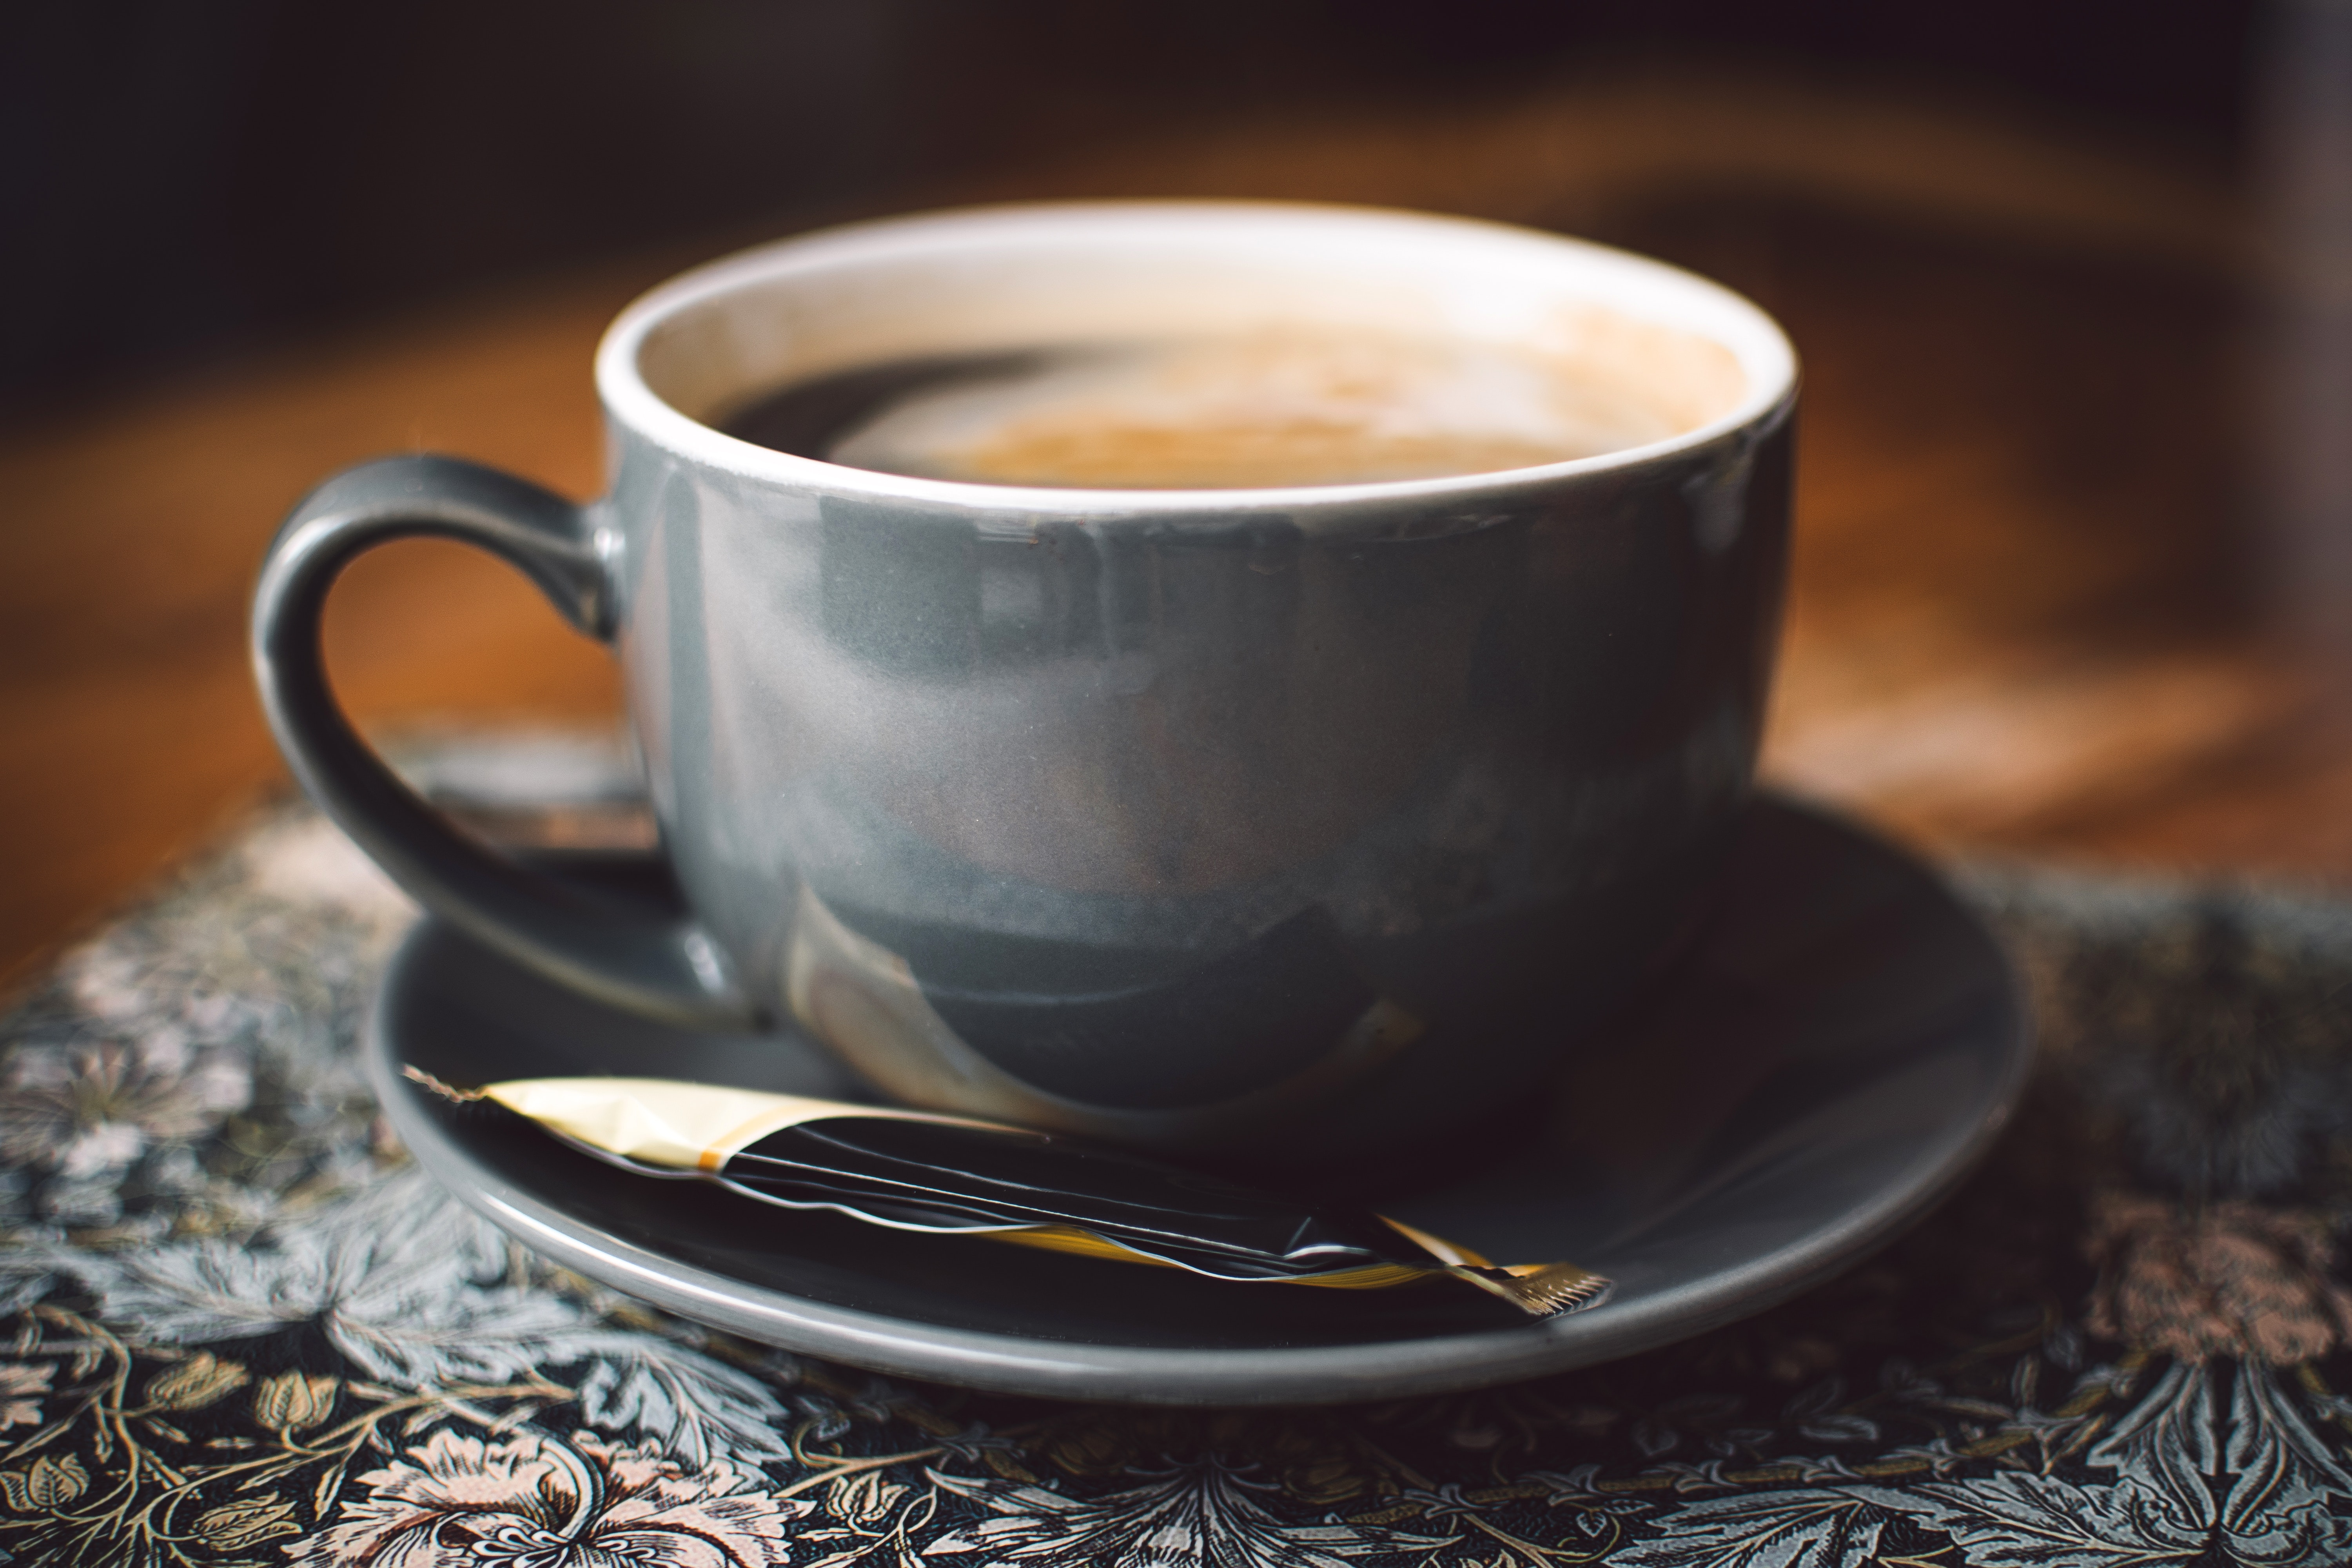 Gray ceramic cup of coffee on round gray saucer photo